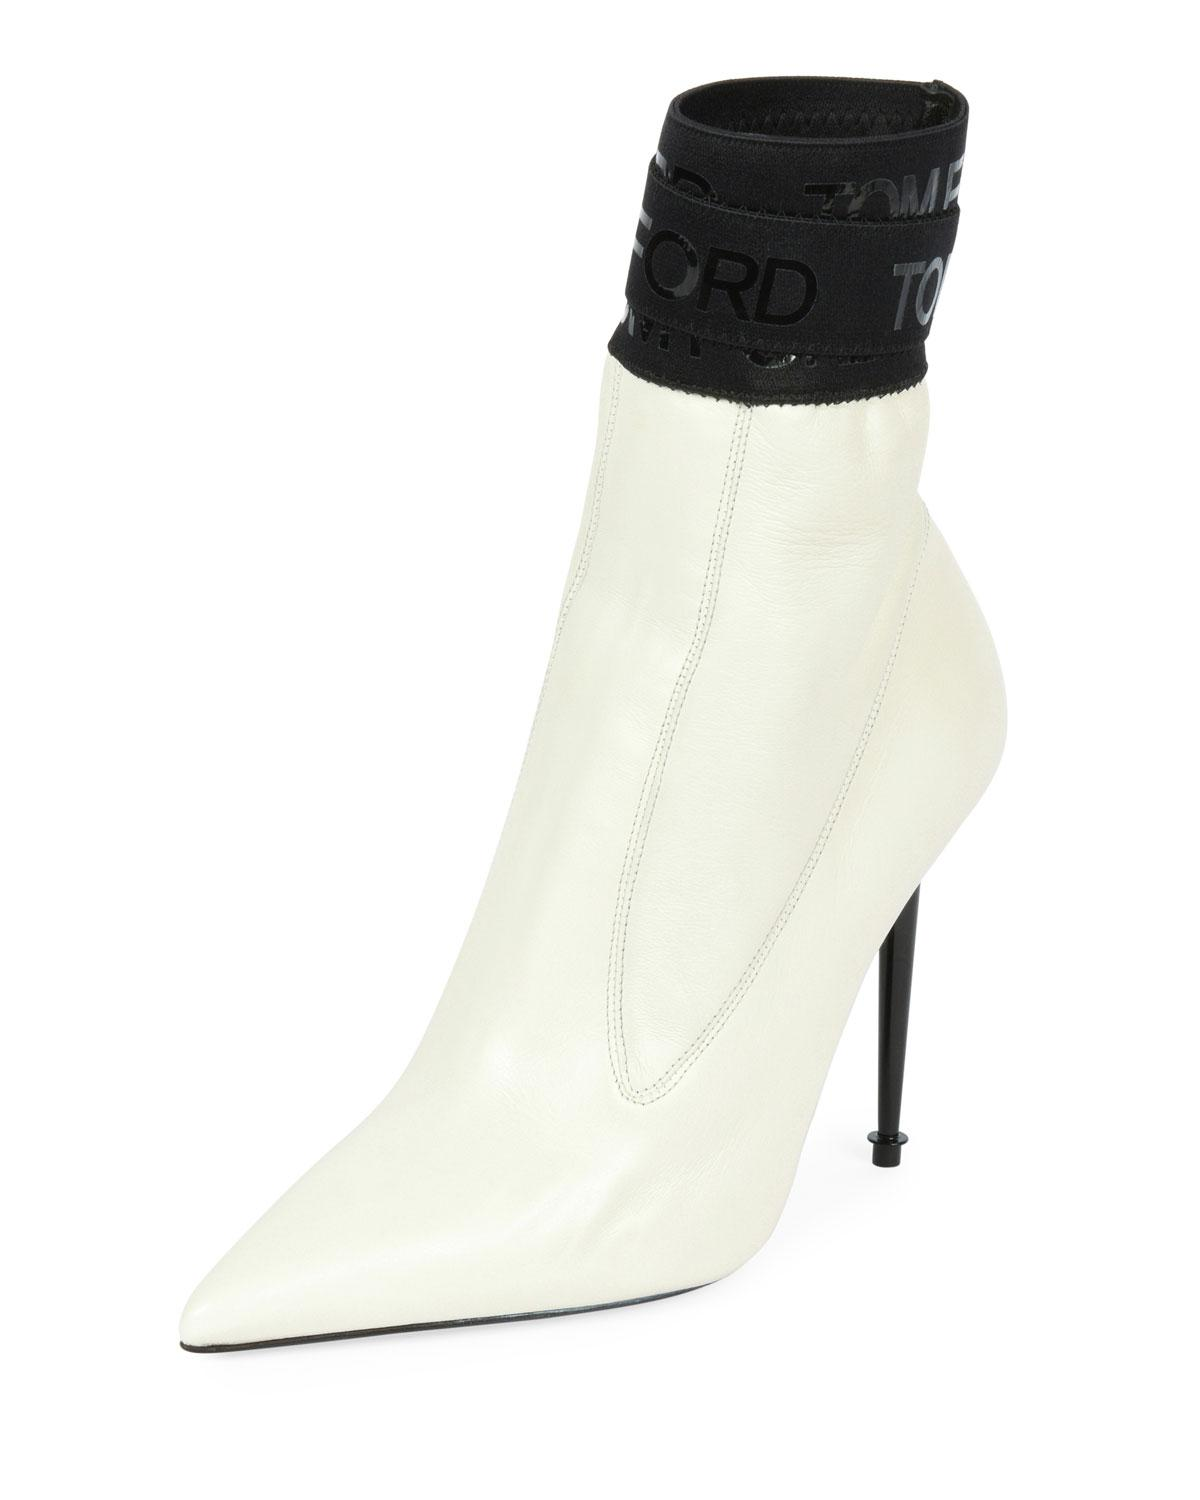 82da4fdffad Lyst - Tom Ford Smooth Booties With Tf Stretch-trim in White